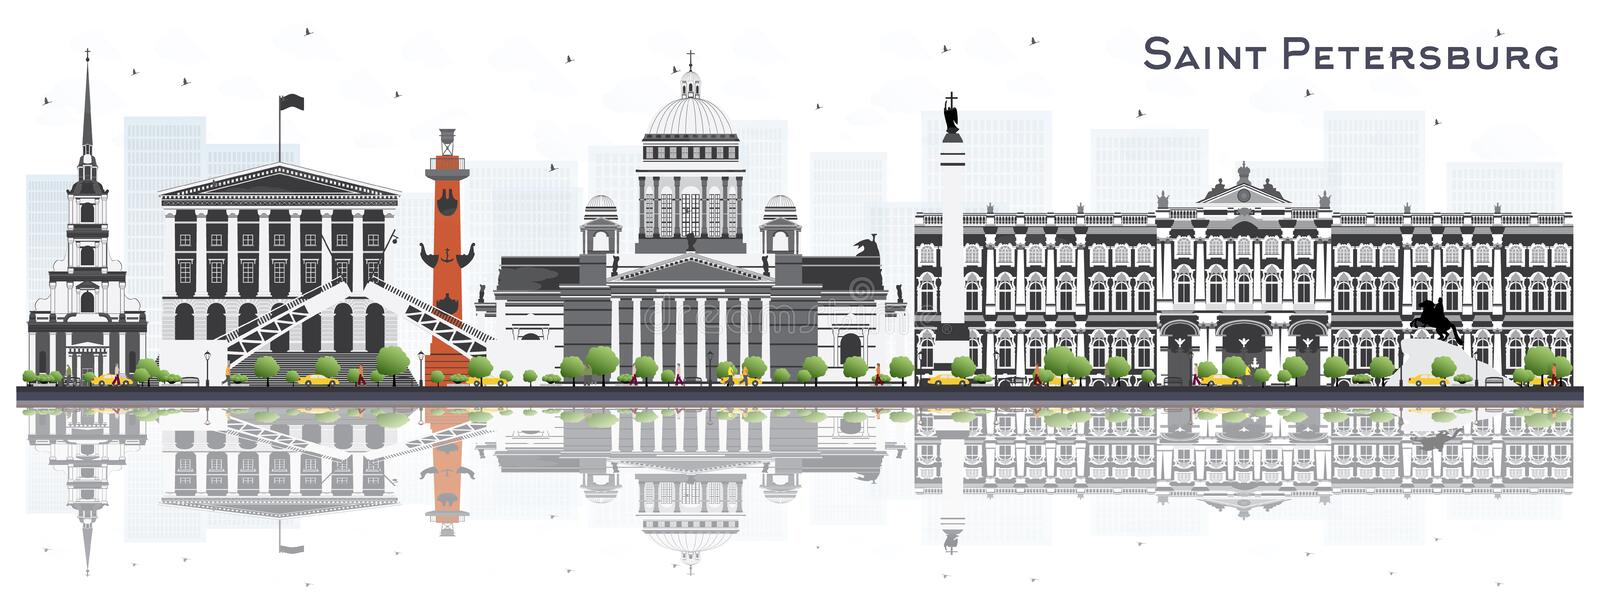 St Petersburg Ryssland horisont med Gray Buildings Isolated på vektor illustrationer